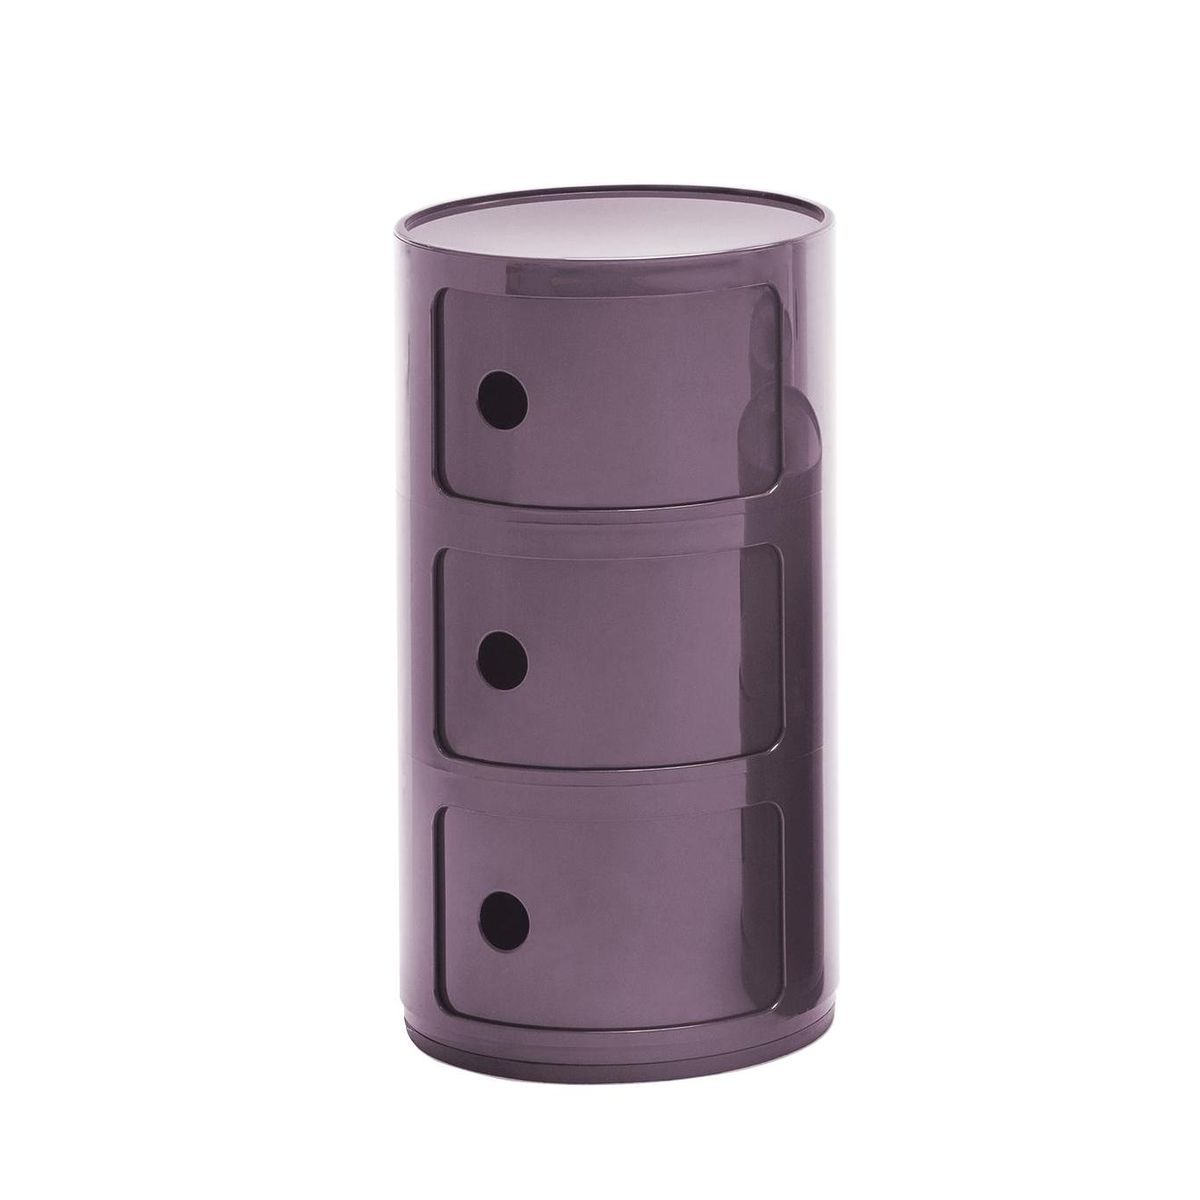 componibili  container  kartell  ambientedirectcom - kartell  componibili  container  lavenderglossy